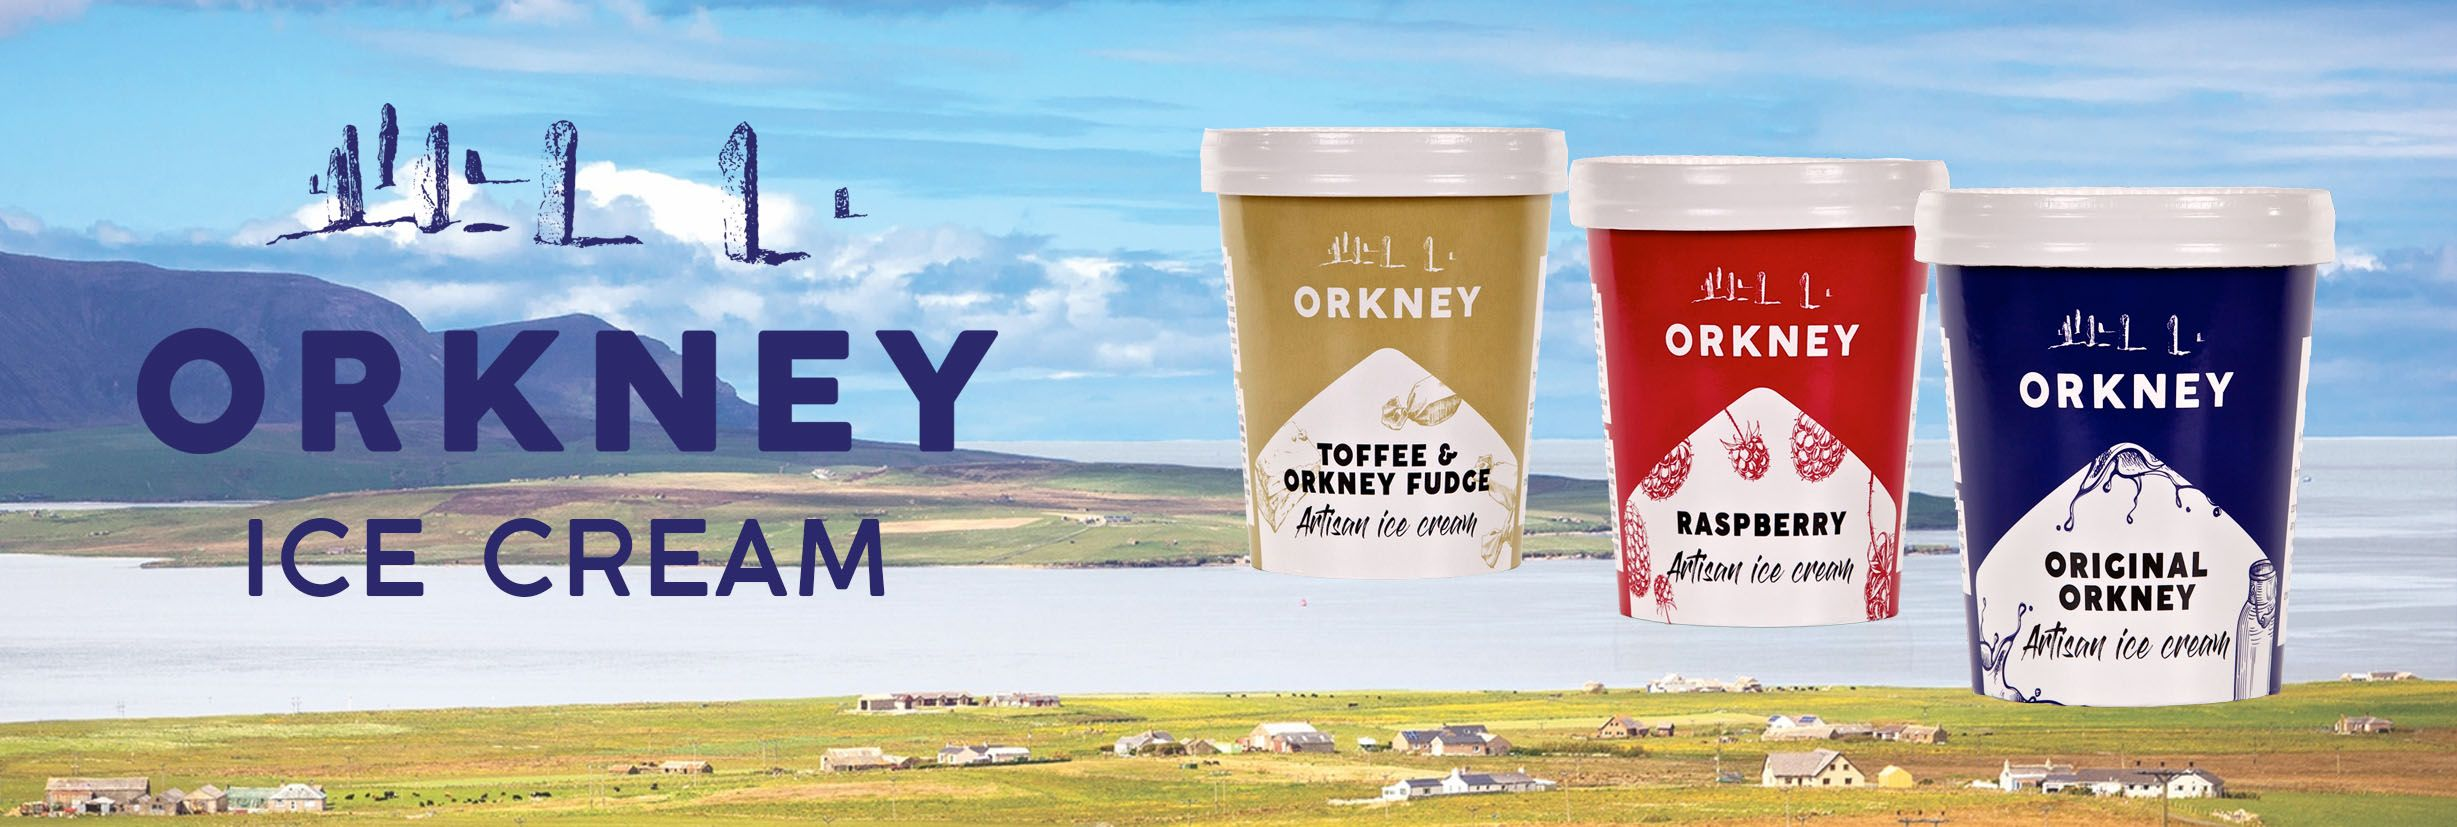 The Orkney Creamery